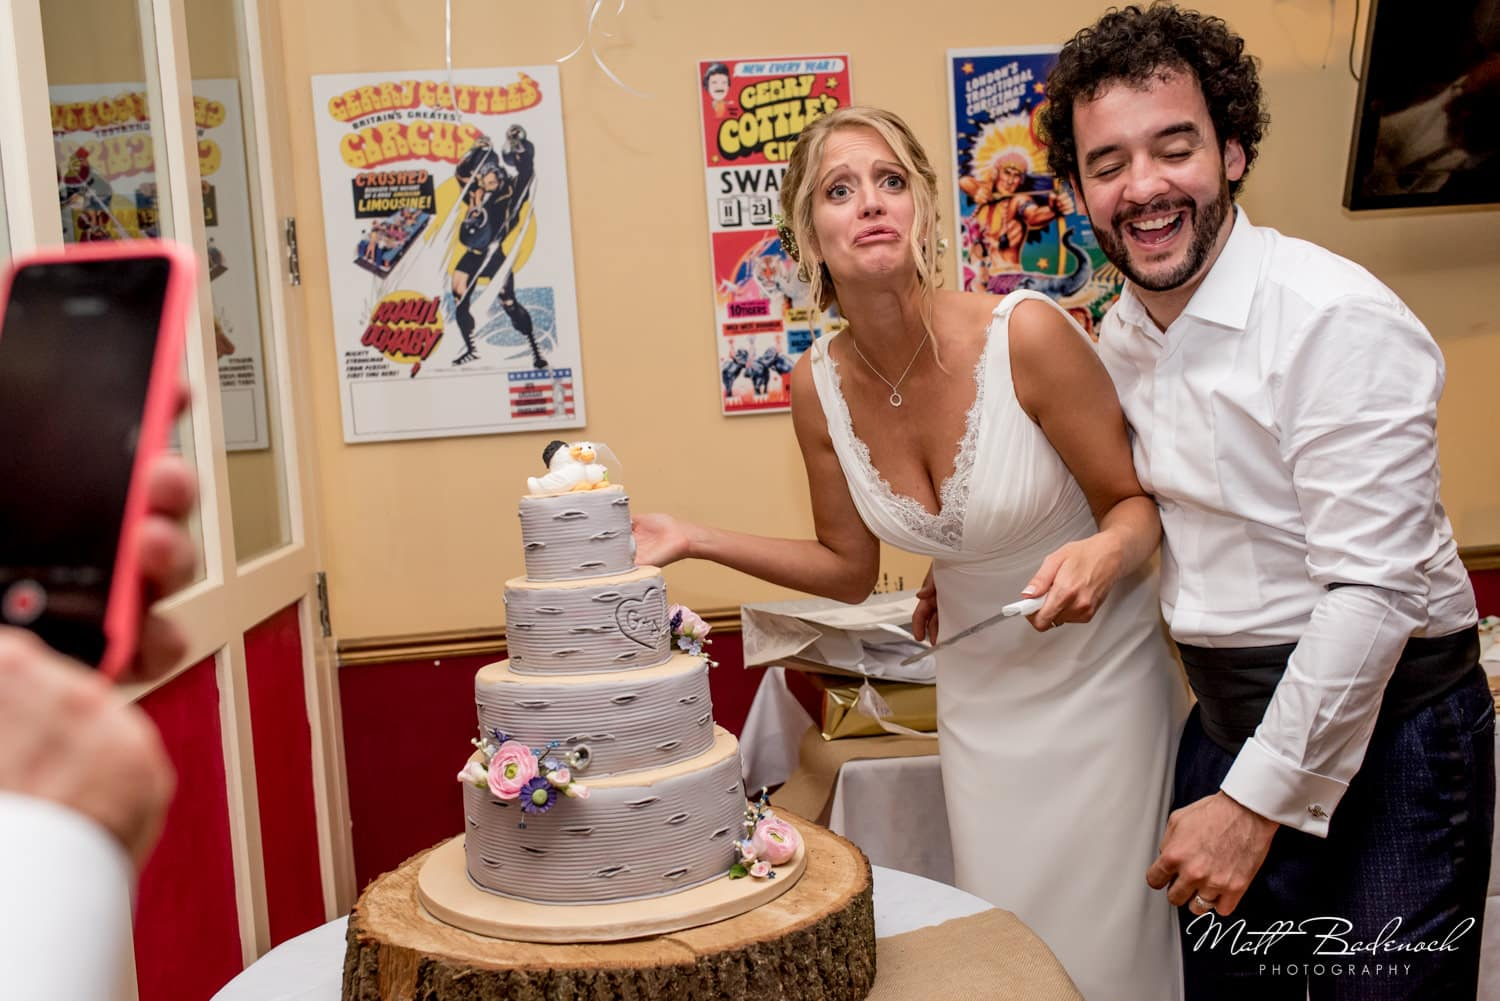 Bride and Groom cutting cake at their Wookey Hole Wedding.